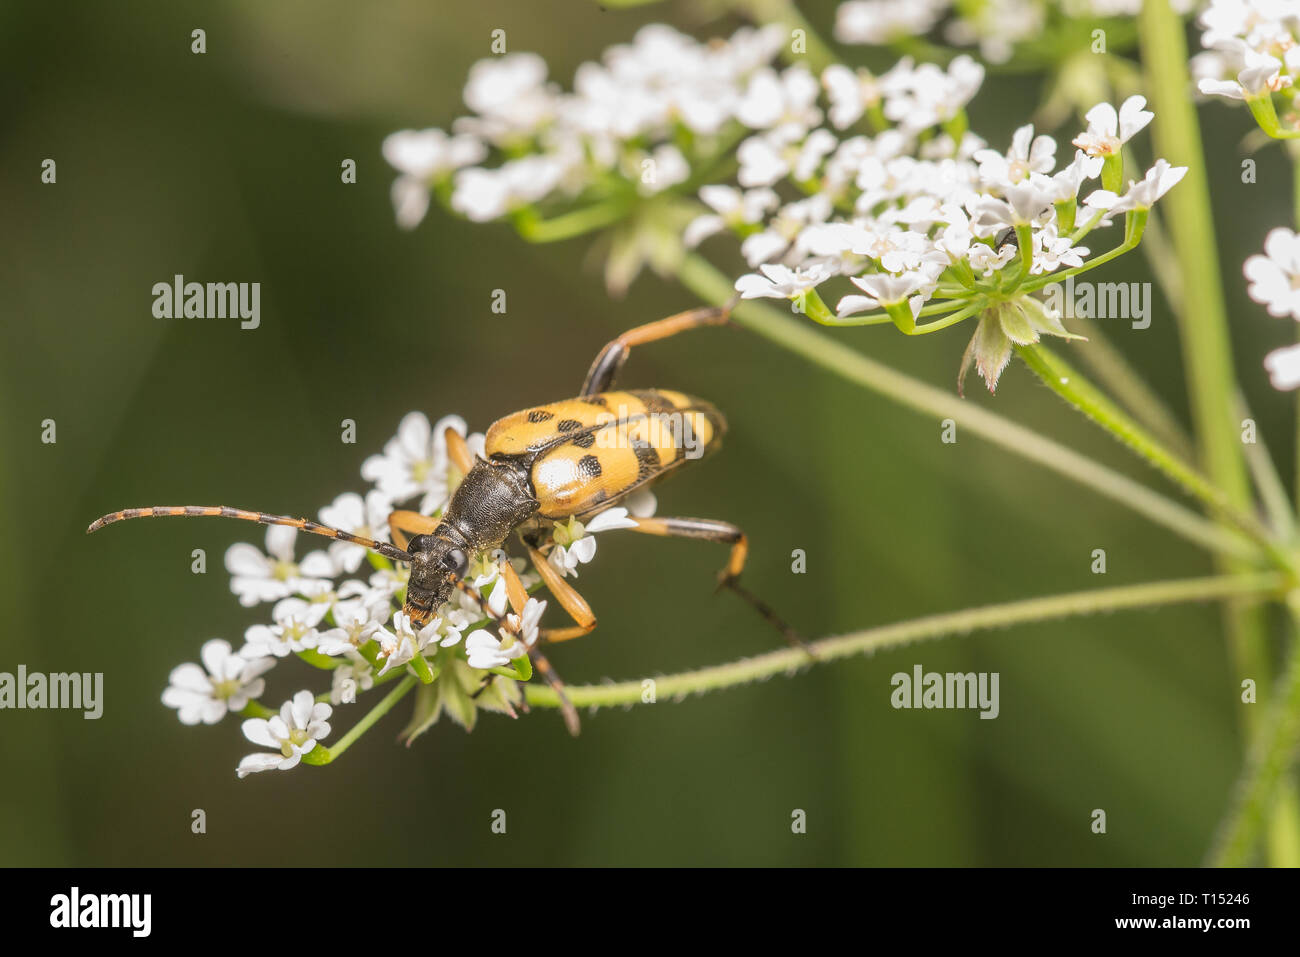 Black and Yellow Longhorn beetle. - Stock Image